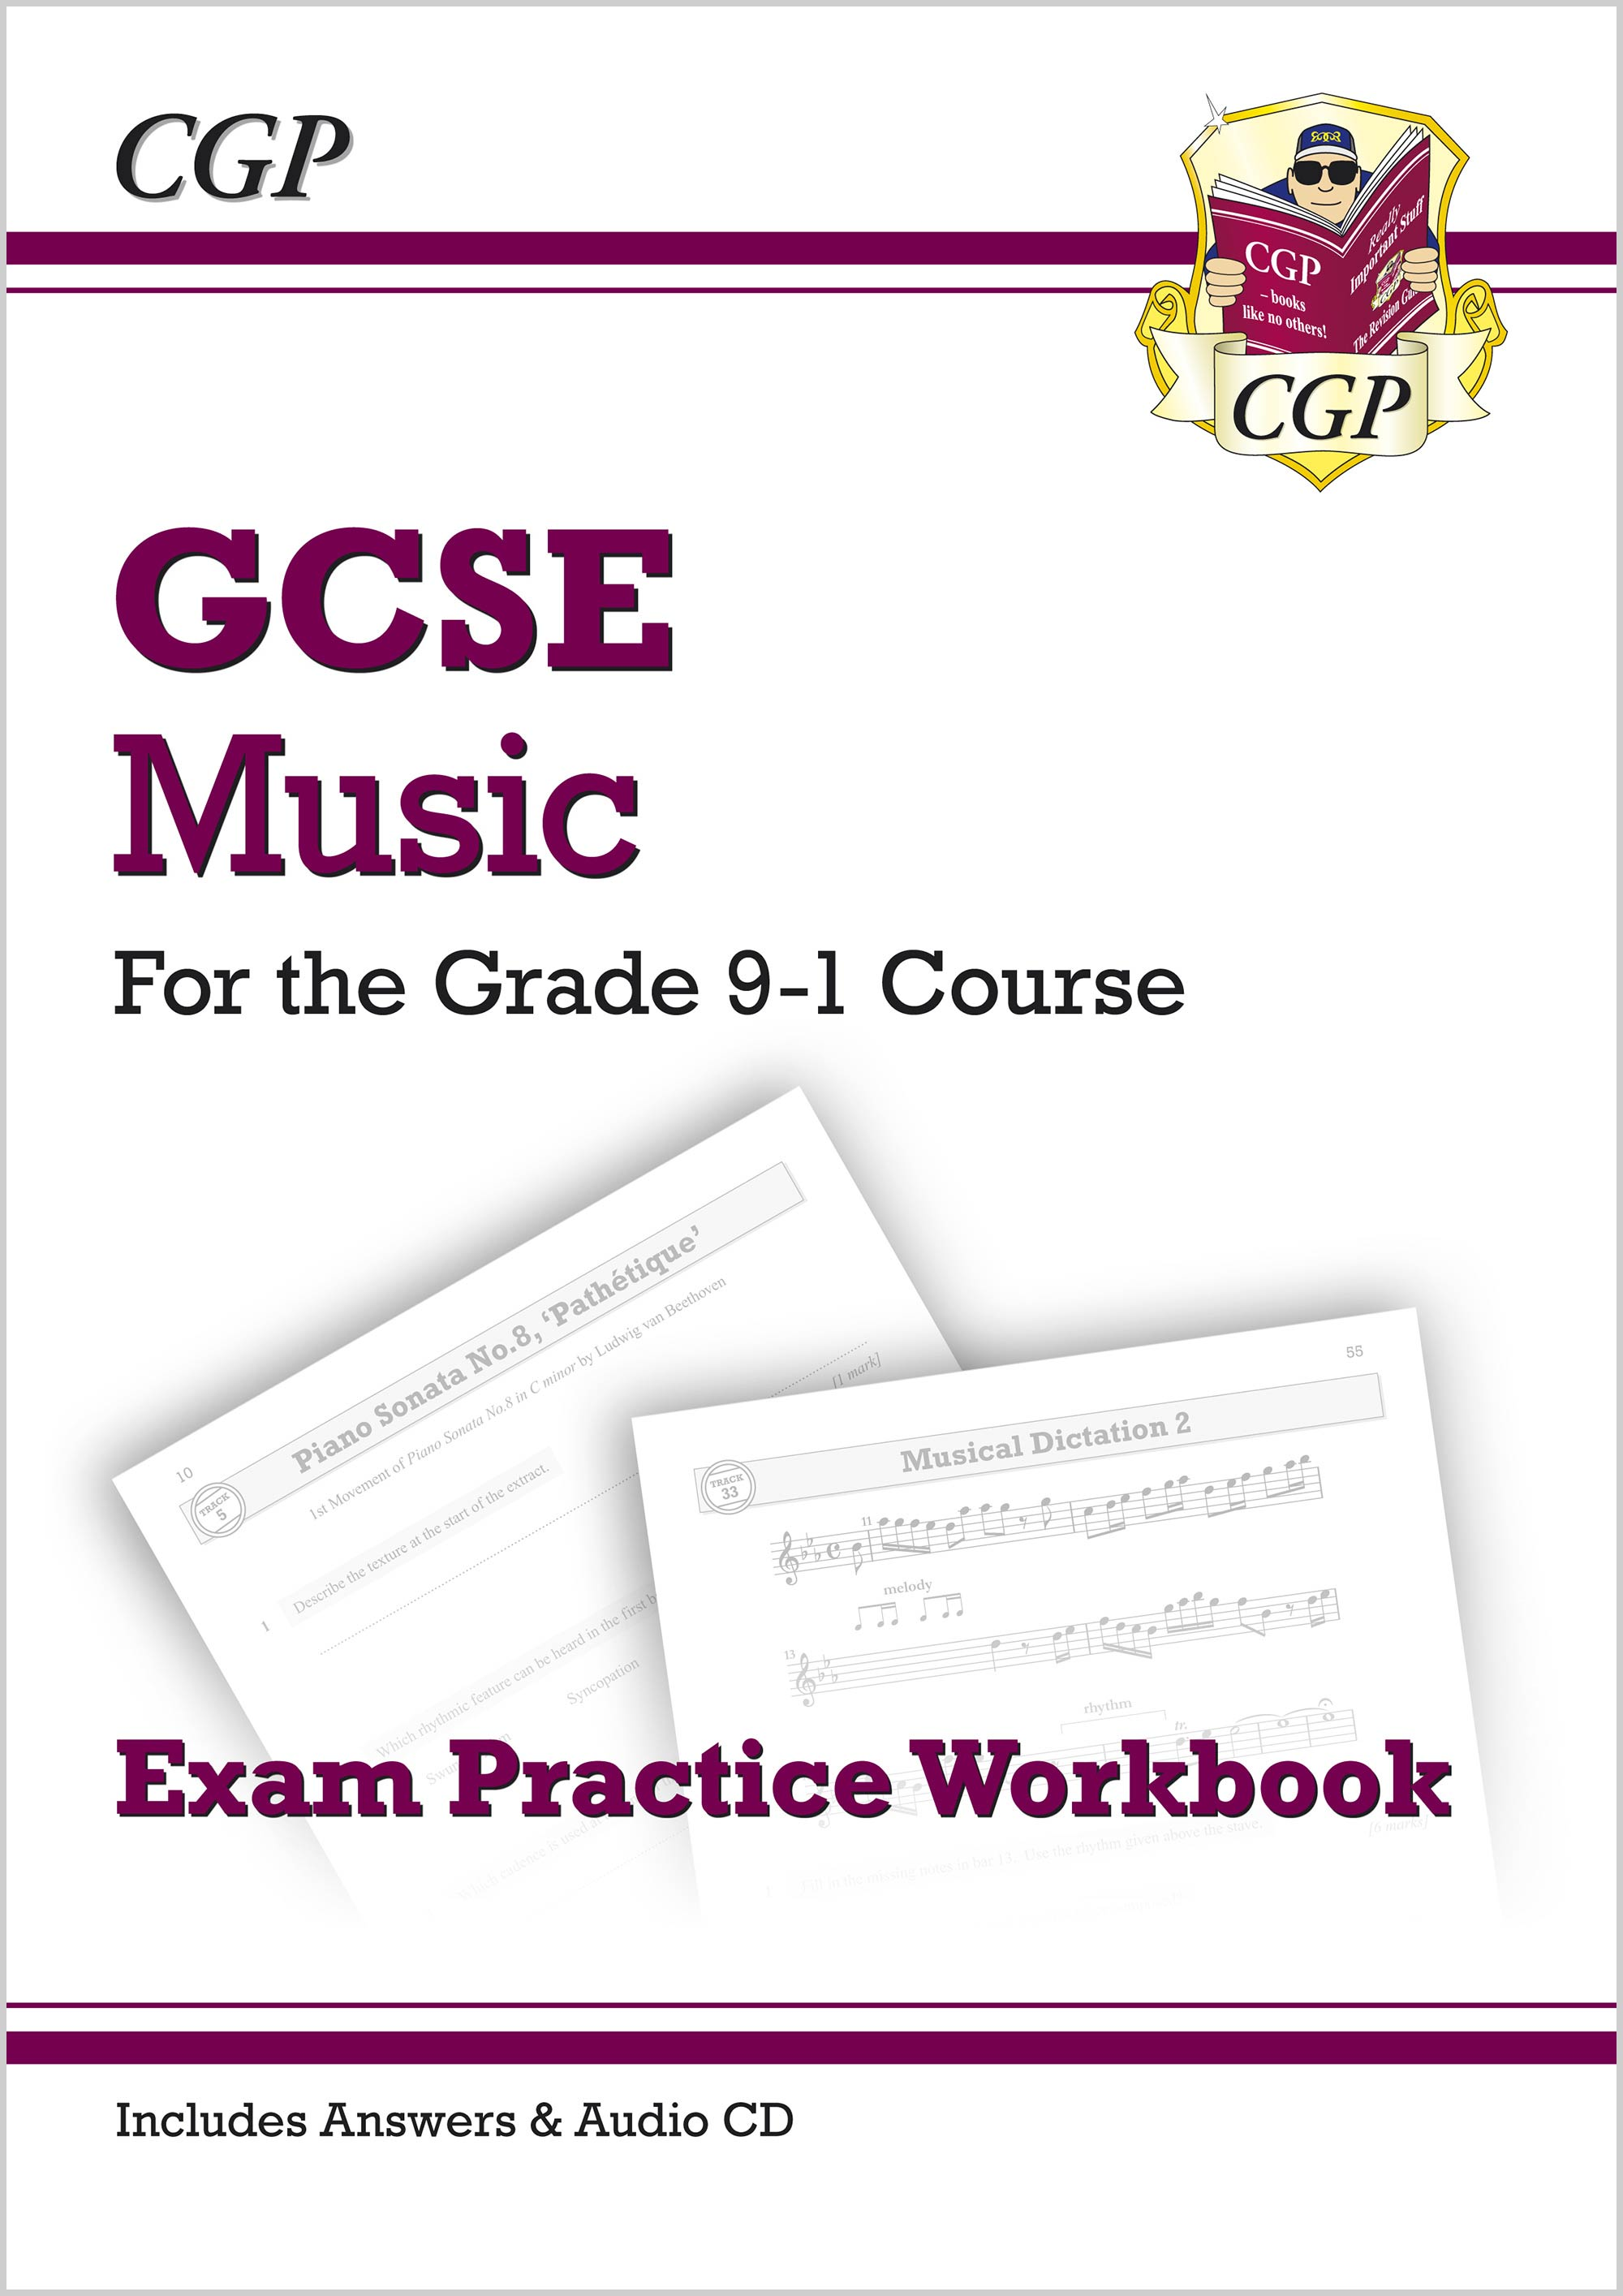 MUQ41 - New GCSE Music Exam Practice Workbook - for the Grade 9-1 Course (with Audio CD & Answers)